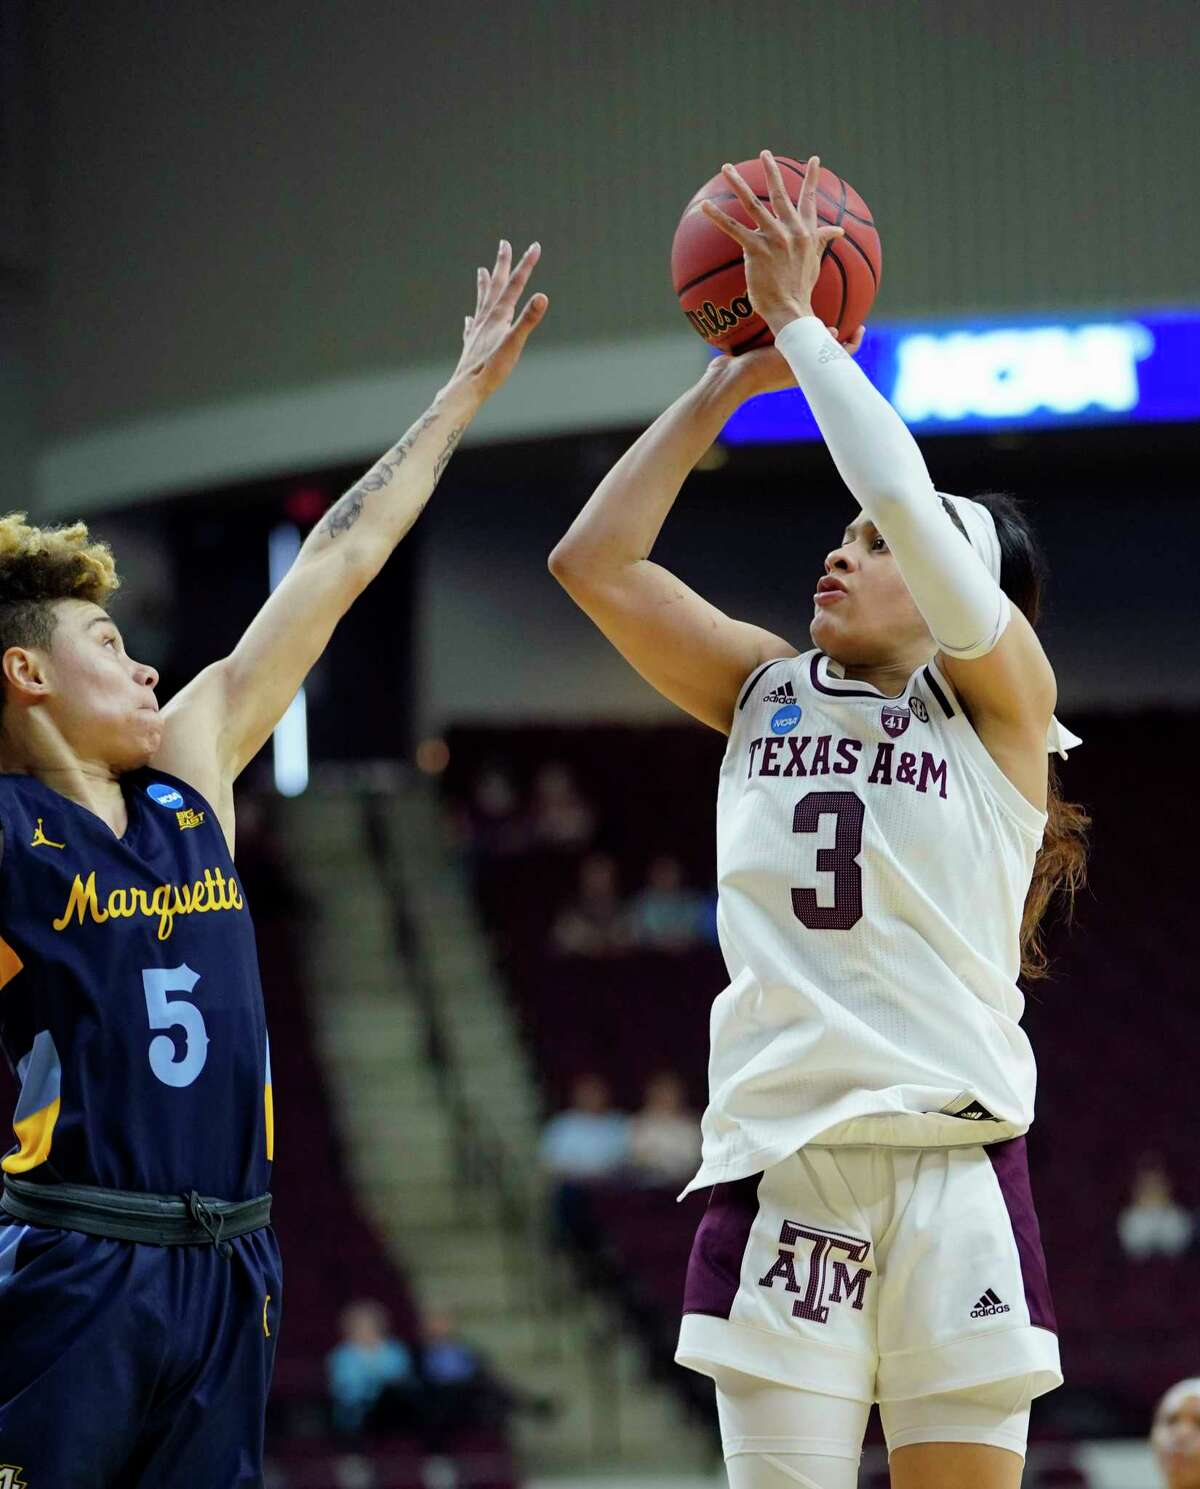 Texas A&M's Chennedy Carter (3) shoots as Marquette's Natisha Hiedeman (5) defends during the second half of a second round women's college basketball game in the NCAA Tournament Sunday, March 24, 2019, in College Station, Texas. Texas A&M won 78-76. (AP Photo/David J. Phillip)